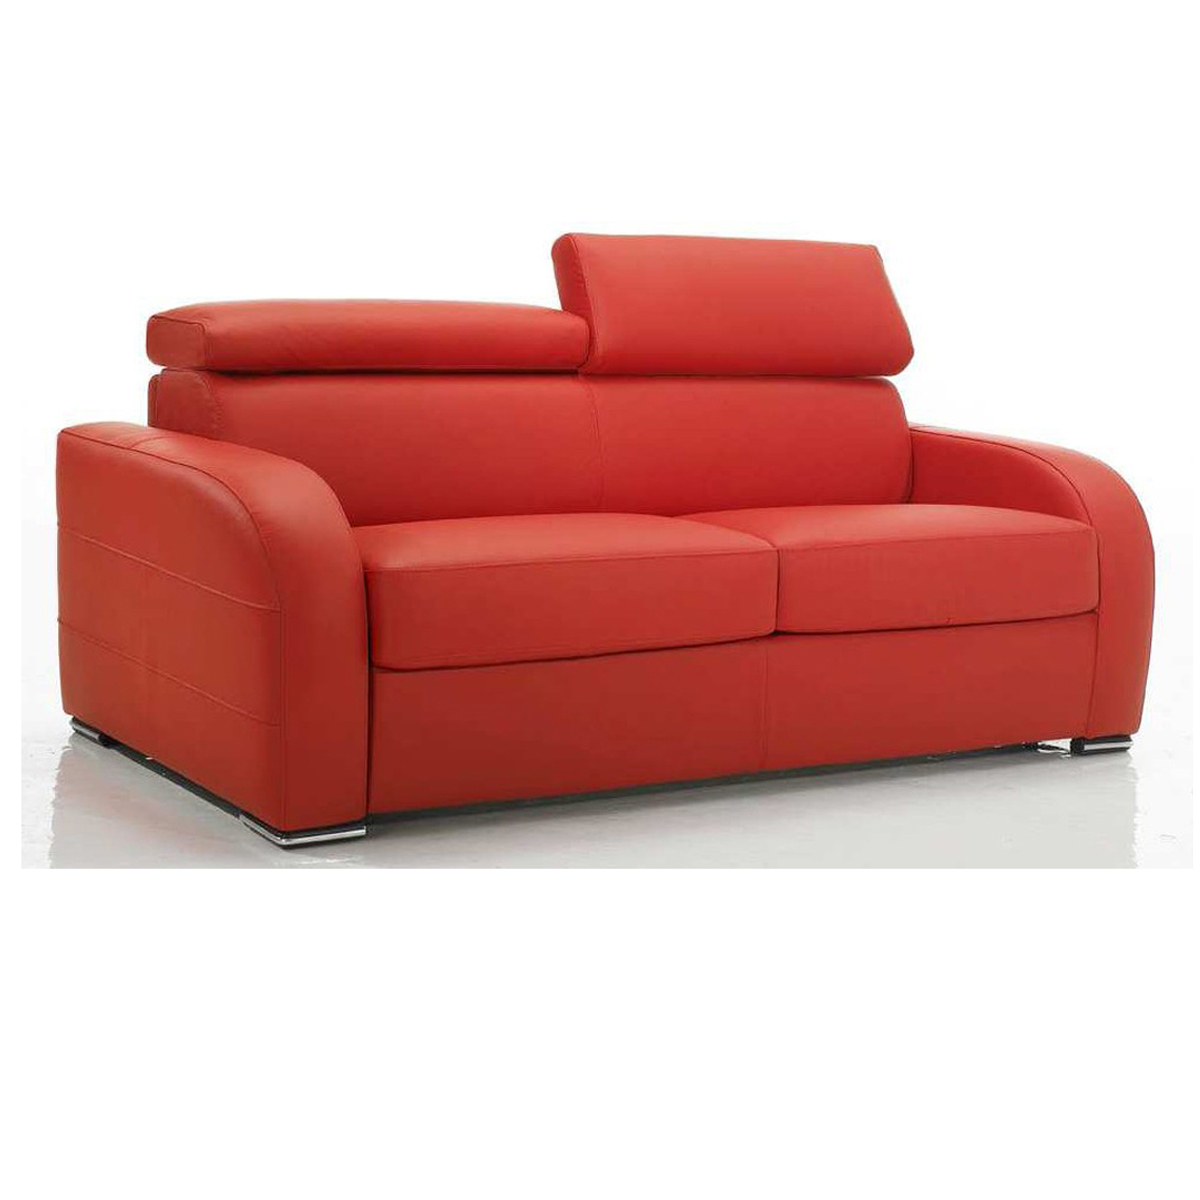 Canap convertible en stock royal sofa id e de canap for Meuble de canape